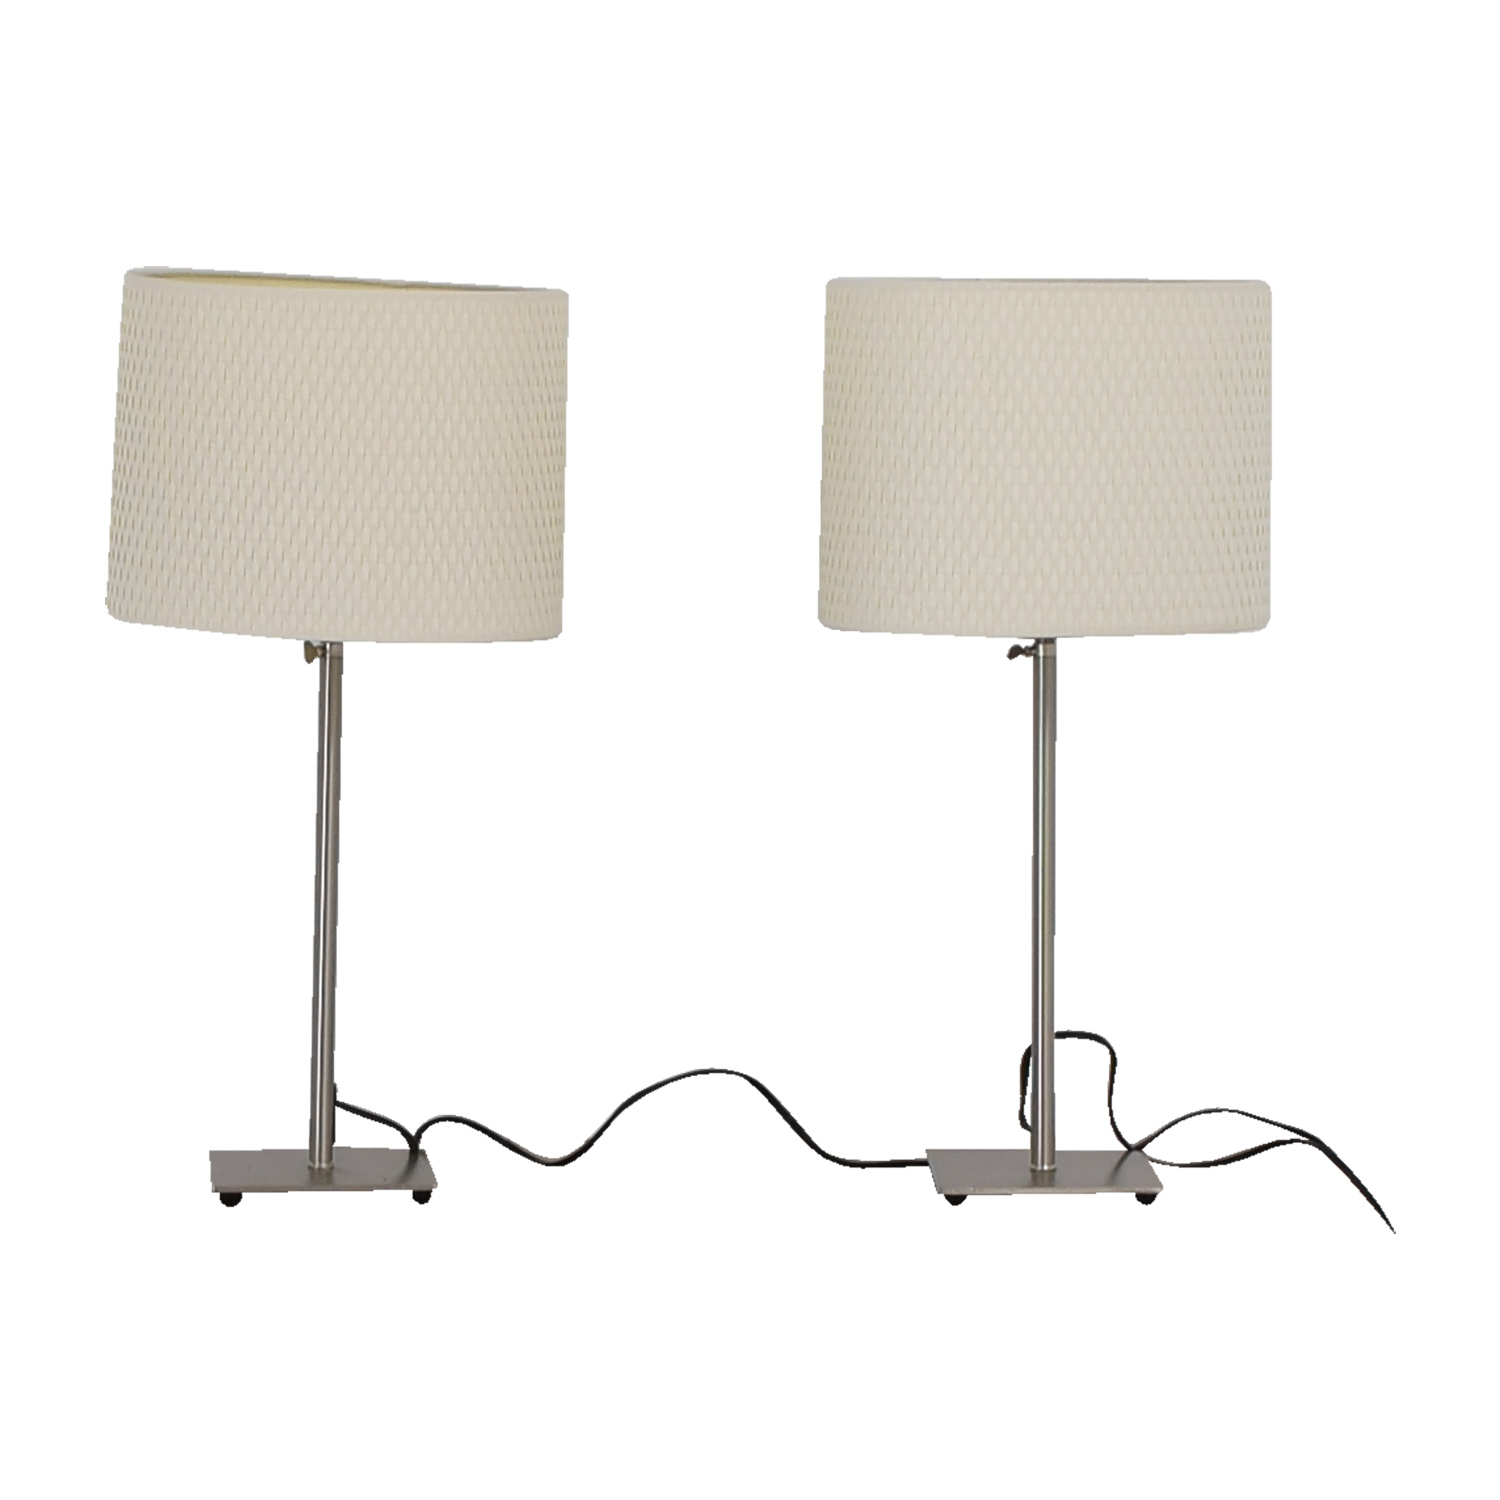 IKEA IKEA Chrome Adjustable Table Lamps